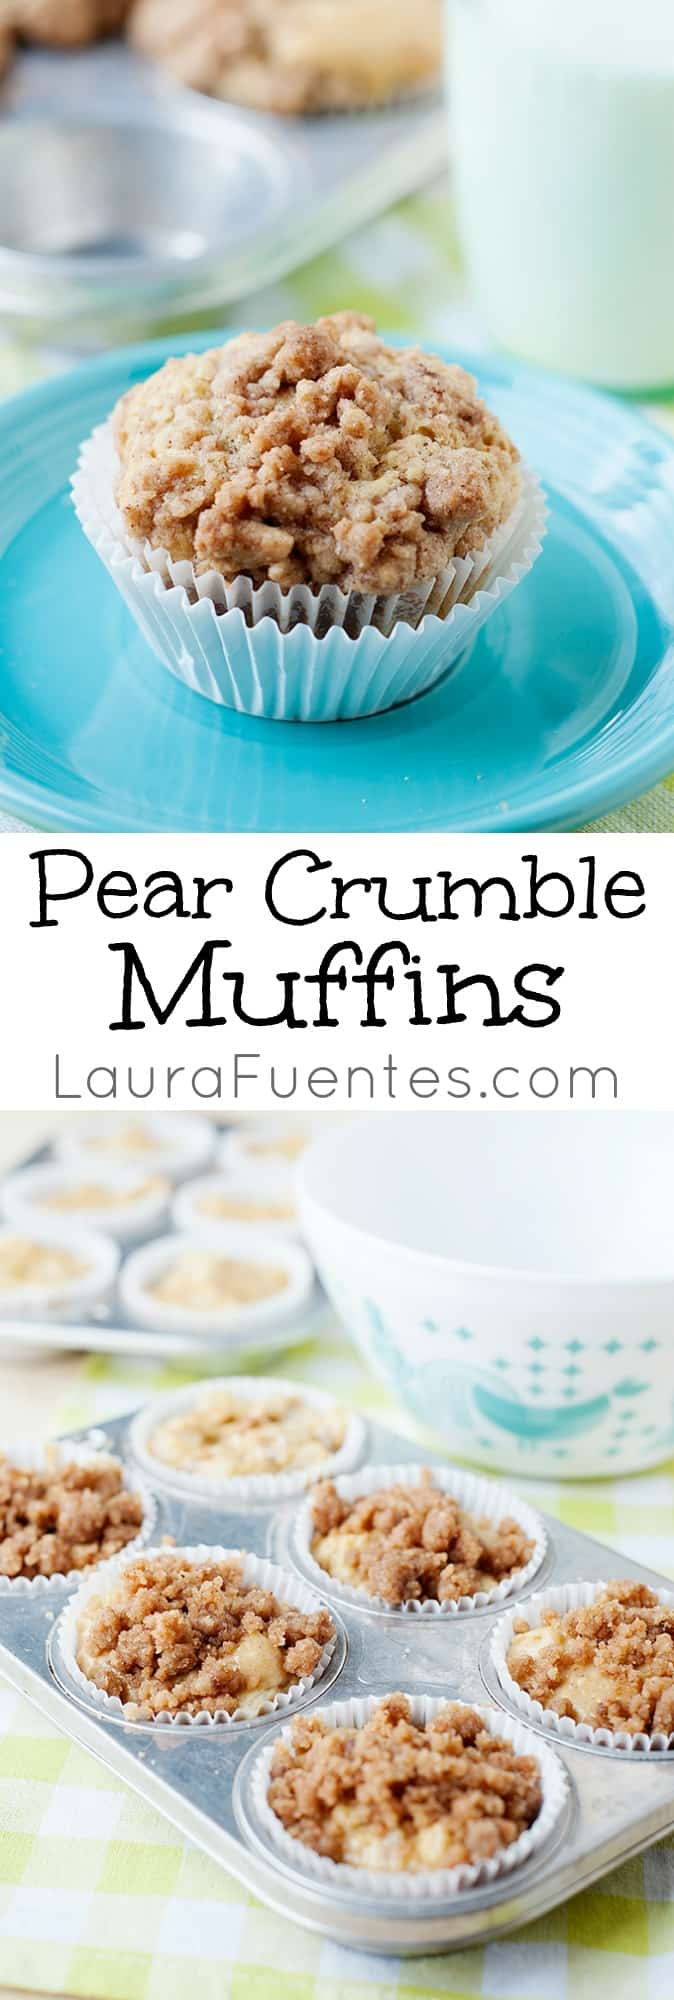 Crumbly and delicious, these moist Pear Crumble Muffins are definitely a must make!